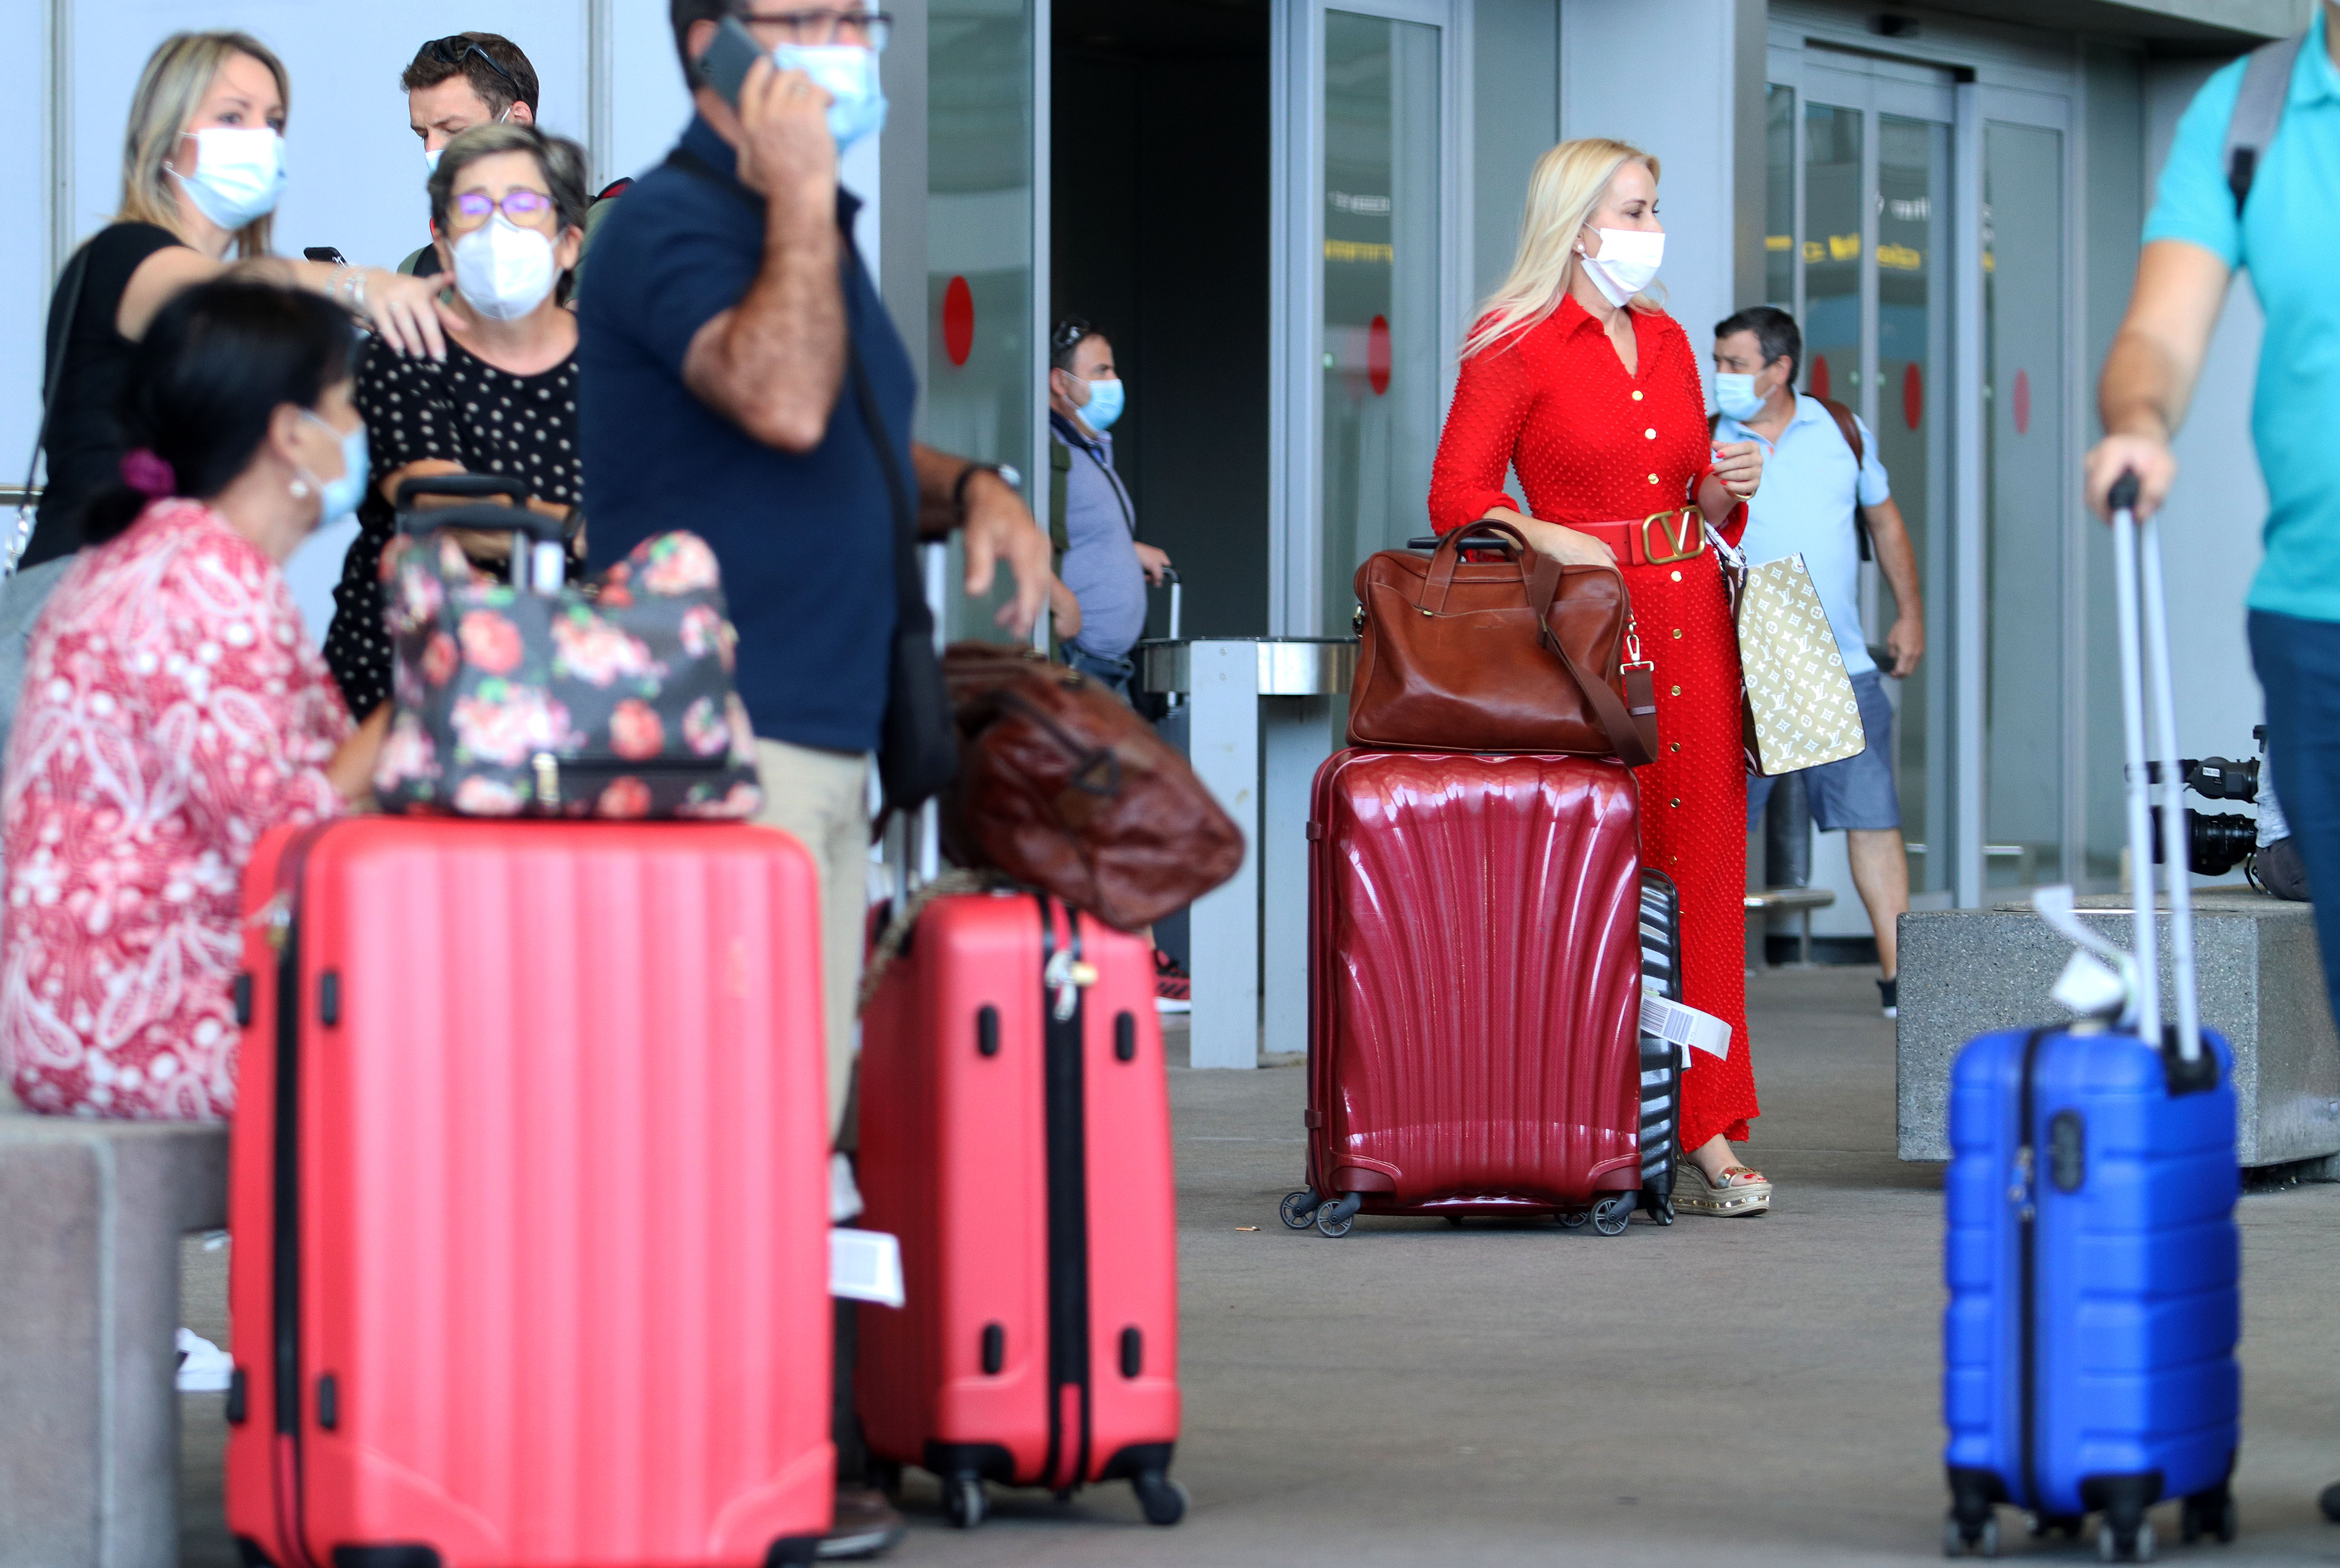 Tourists arrive at Pablo Ruiz Picasso Airport on June 22, 2020 in Malaga, Spain.